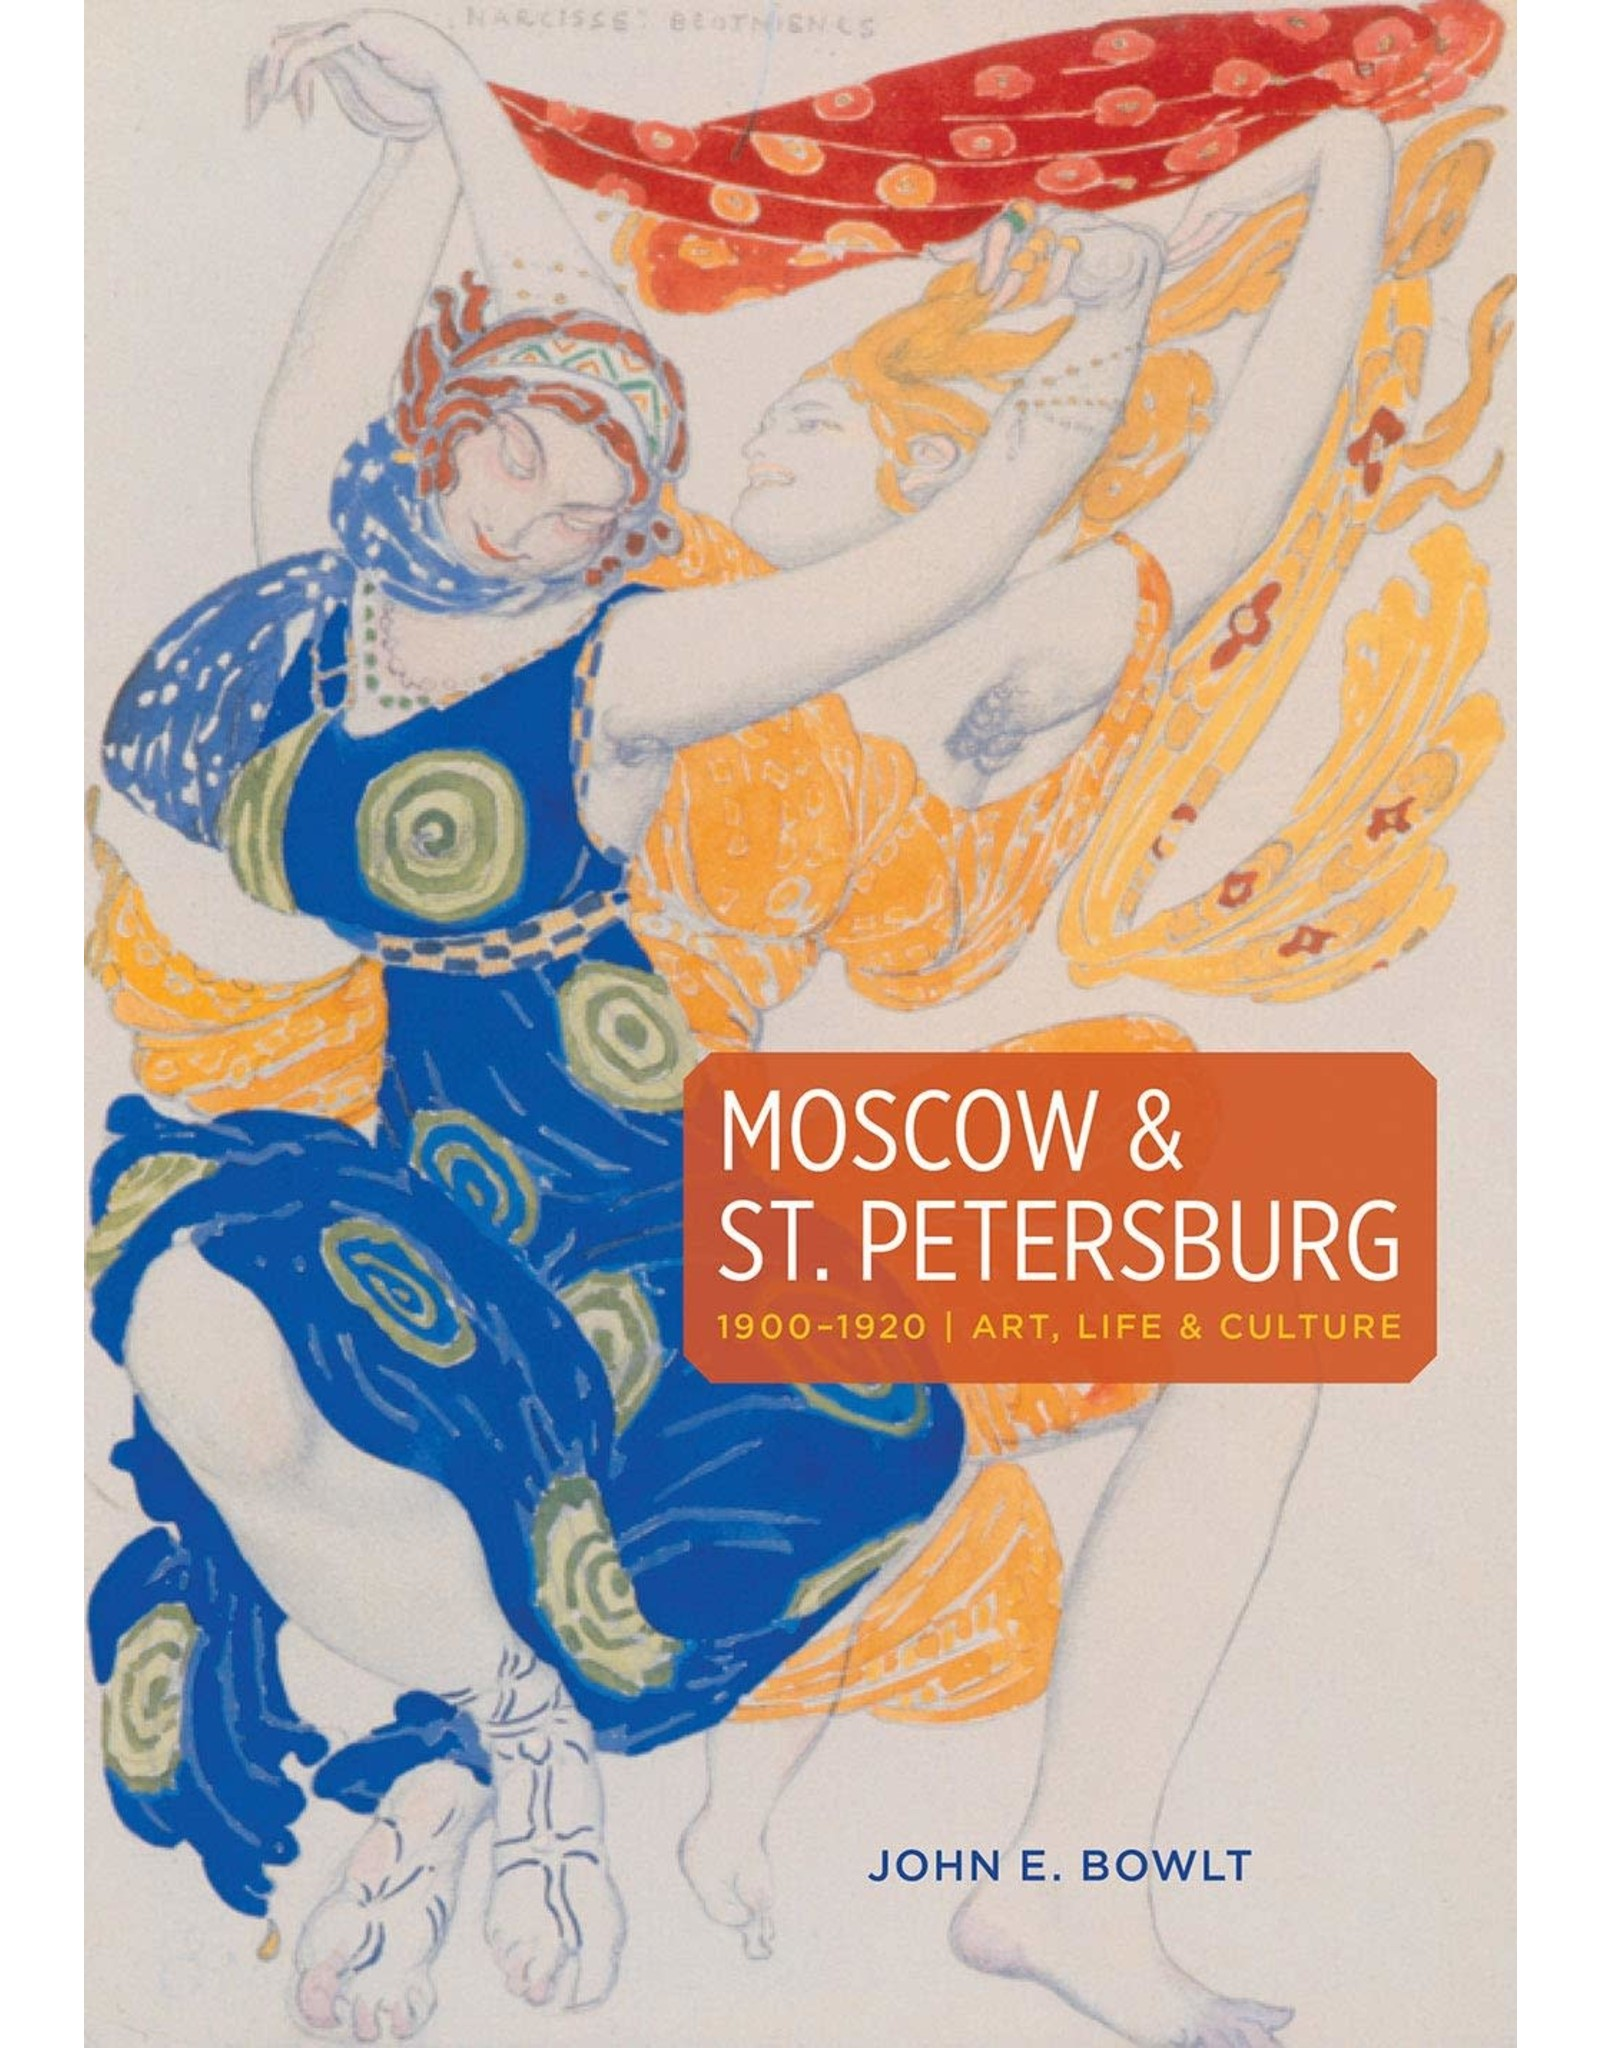 Moscow & St. Petersburg: Art, Life and Culture of the Russian Silver Age